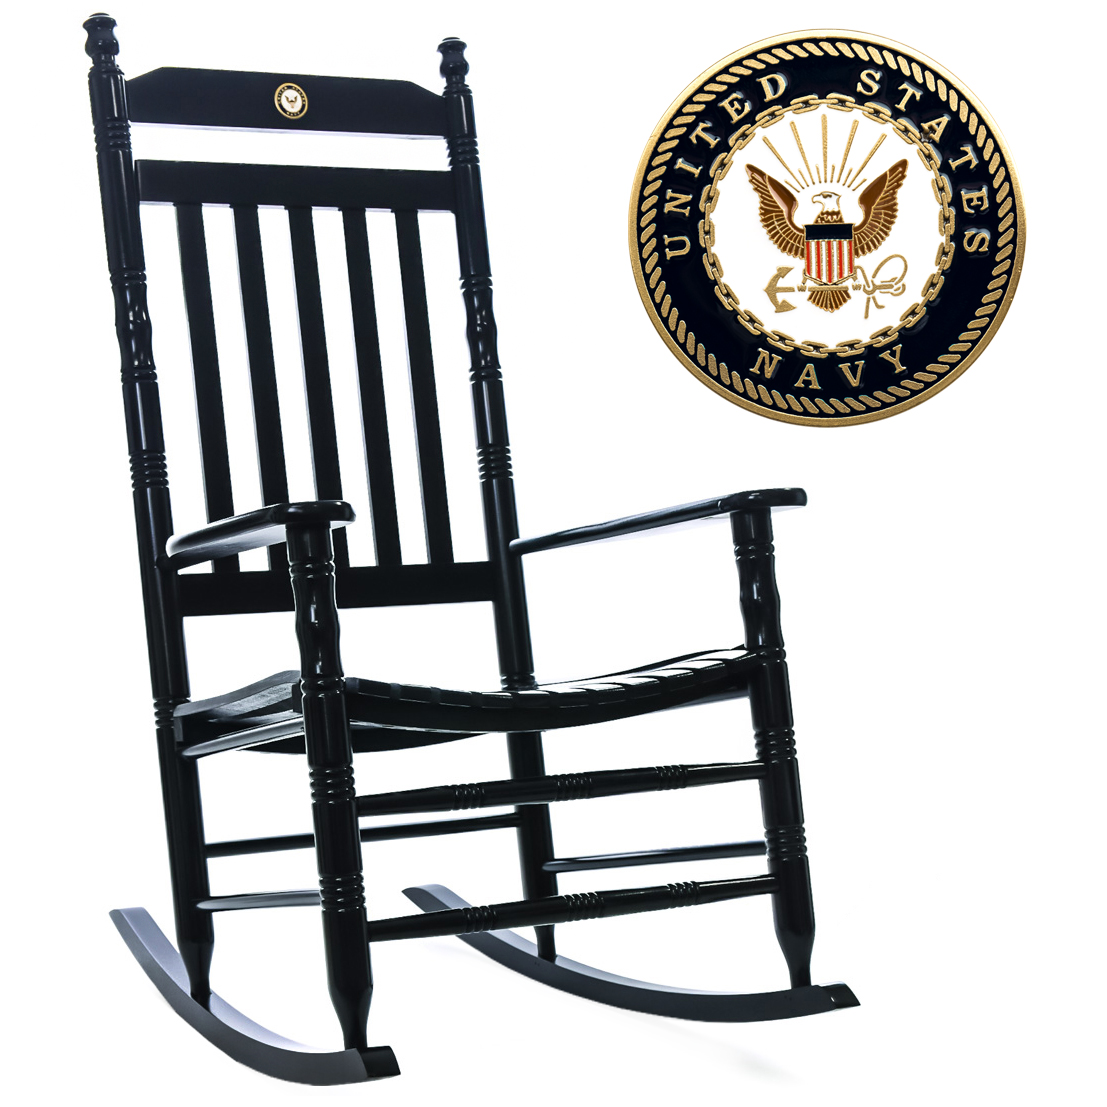 U.S. Navy Fully Assembled Rocking Chair | Military | Rocking Chairs    Cracker Barrel Old Country Store